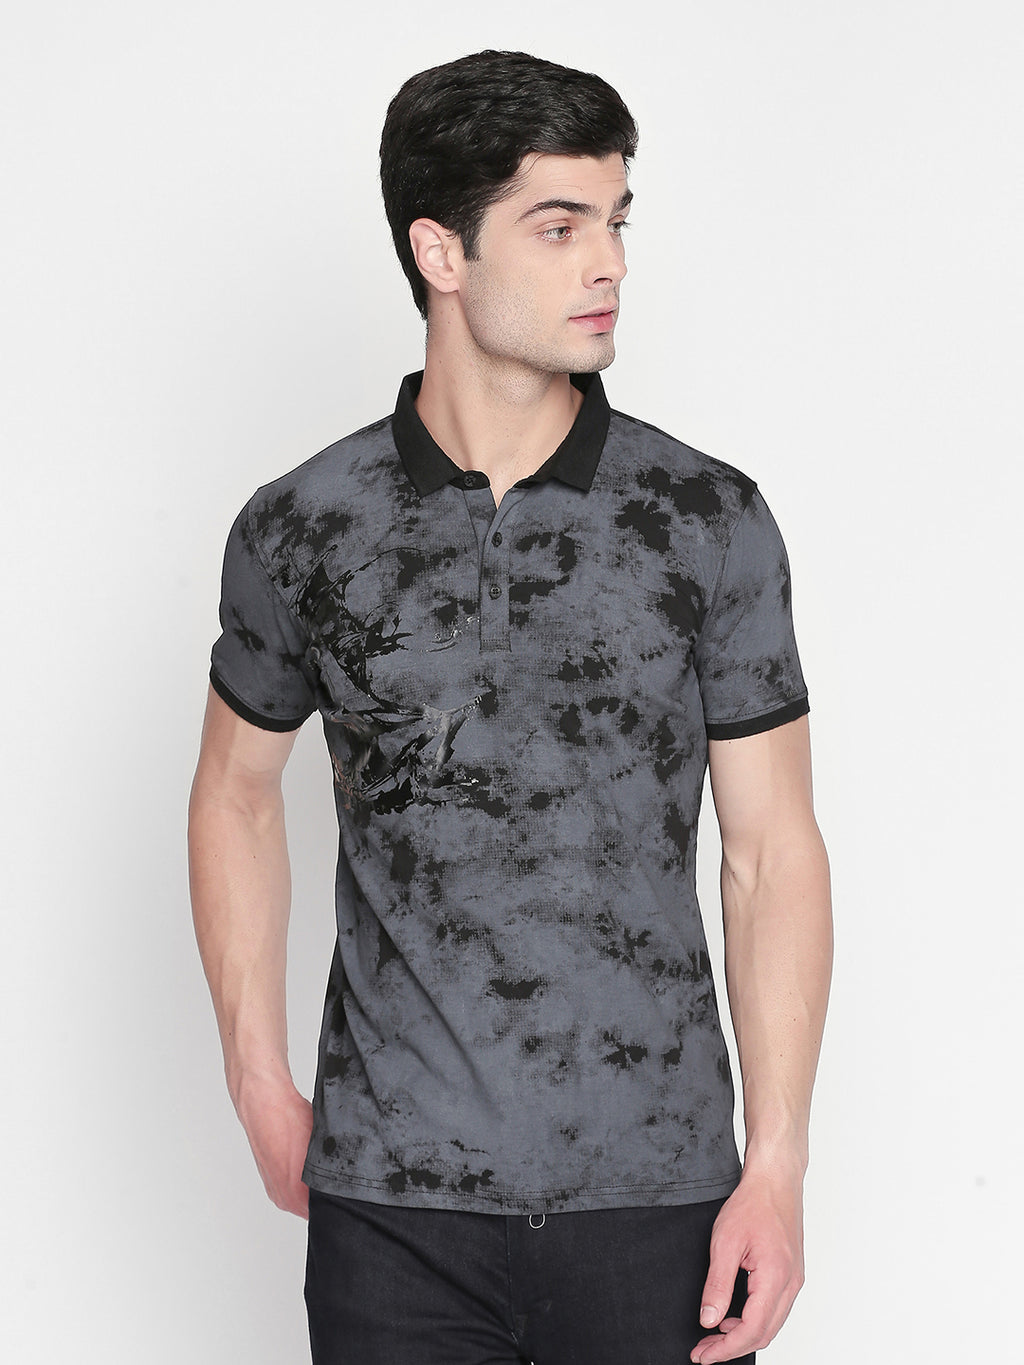 ZIDO Printed Men's T-Shirt TPRT405